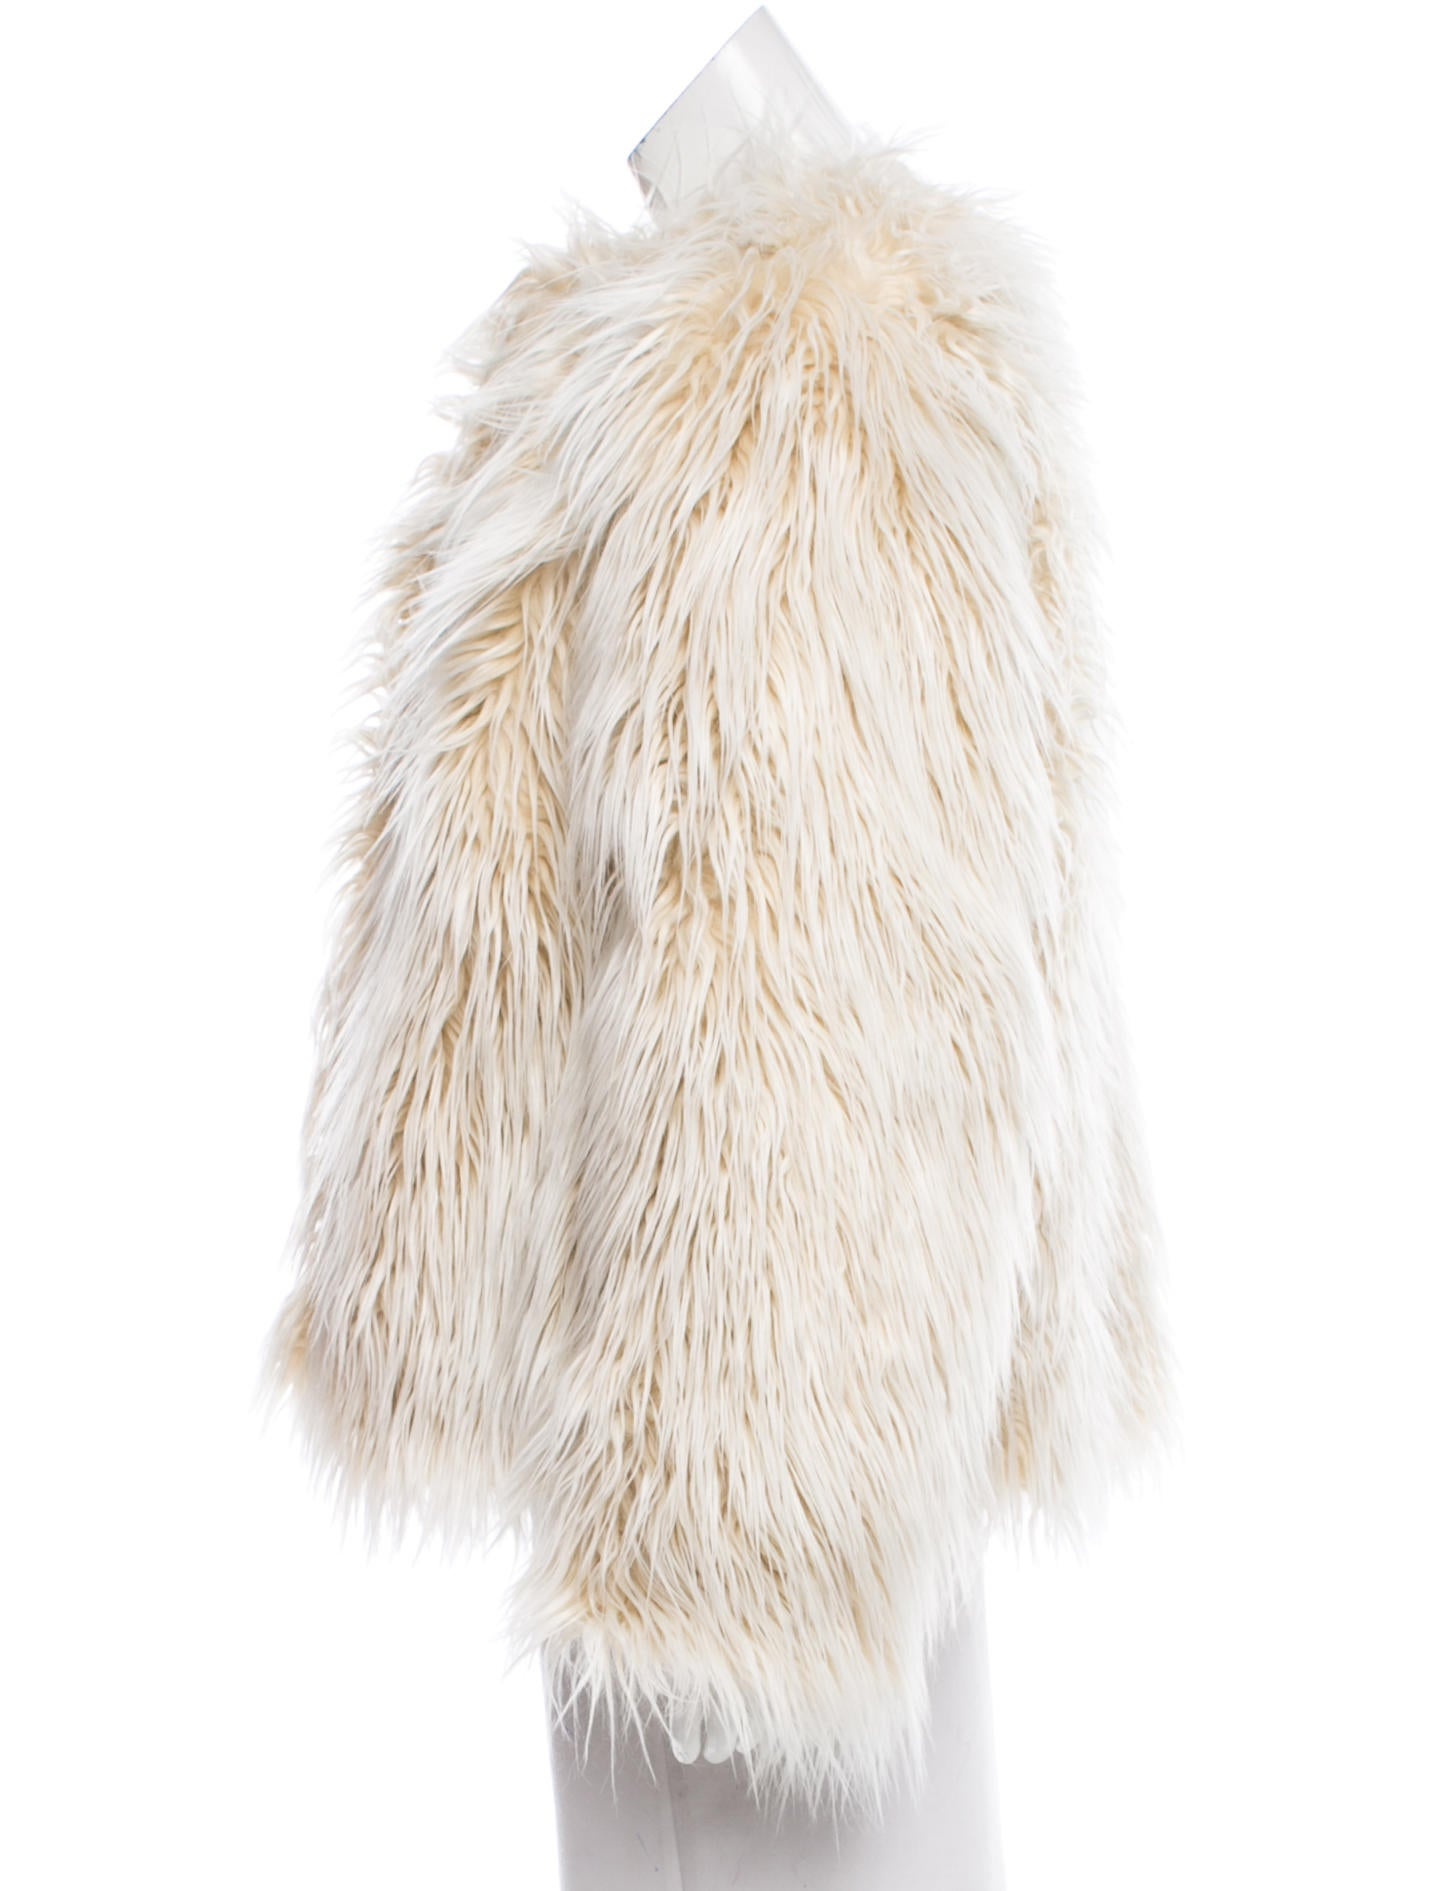 Faux fur coat winter is the tribute to eco fashion, that should be highly appreciated by all animal advocates and environmentally friendly fashion followers. Last fall-winter seasons trendy fur designs were deliberately artificial, matted, seemed like moth-eaten.